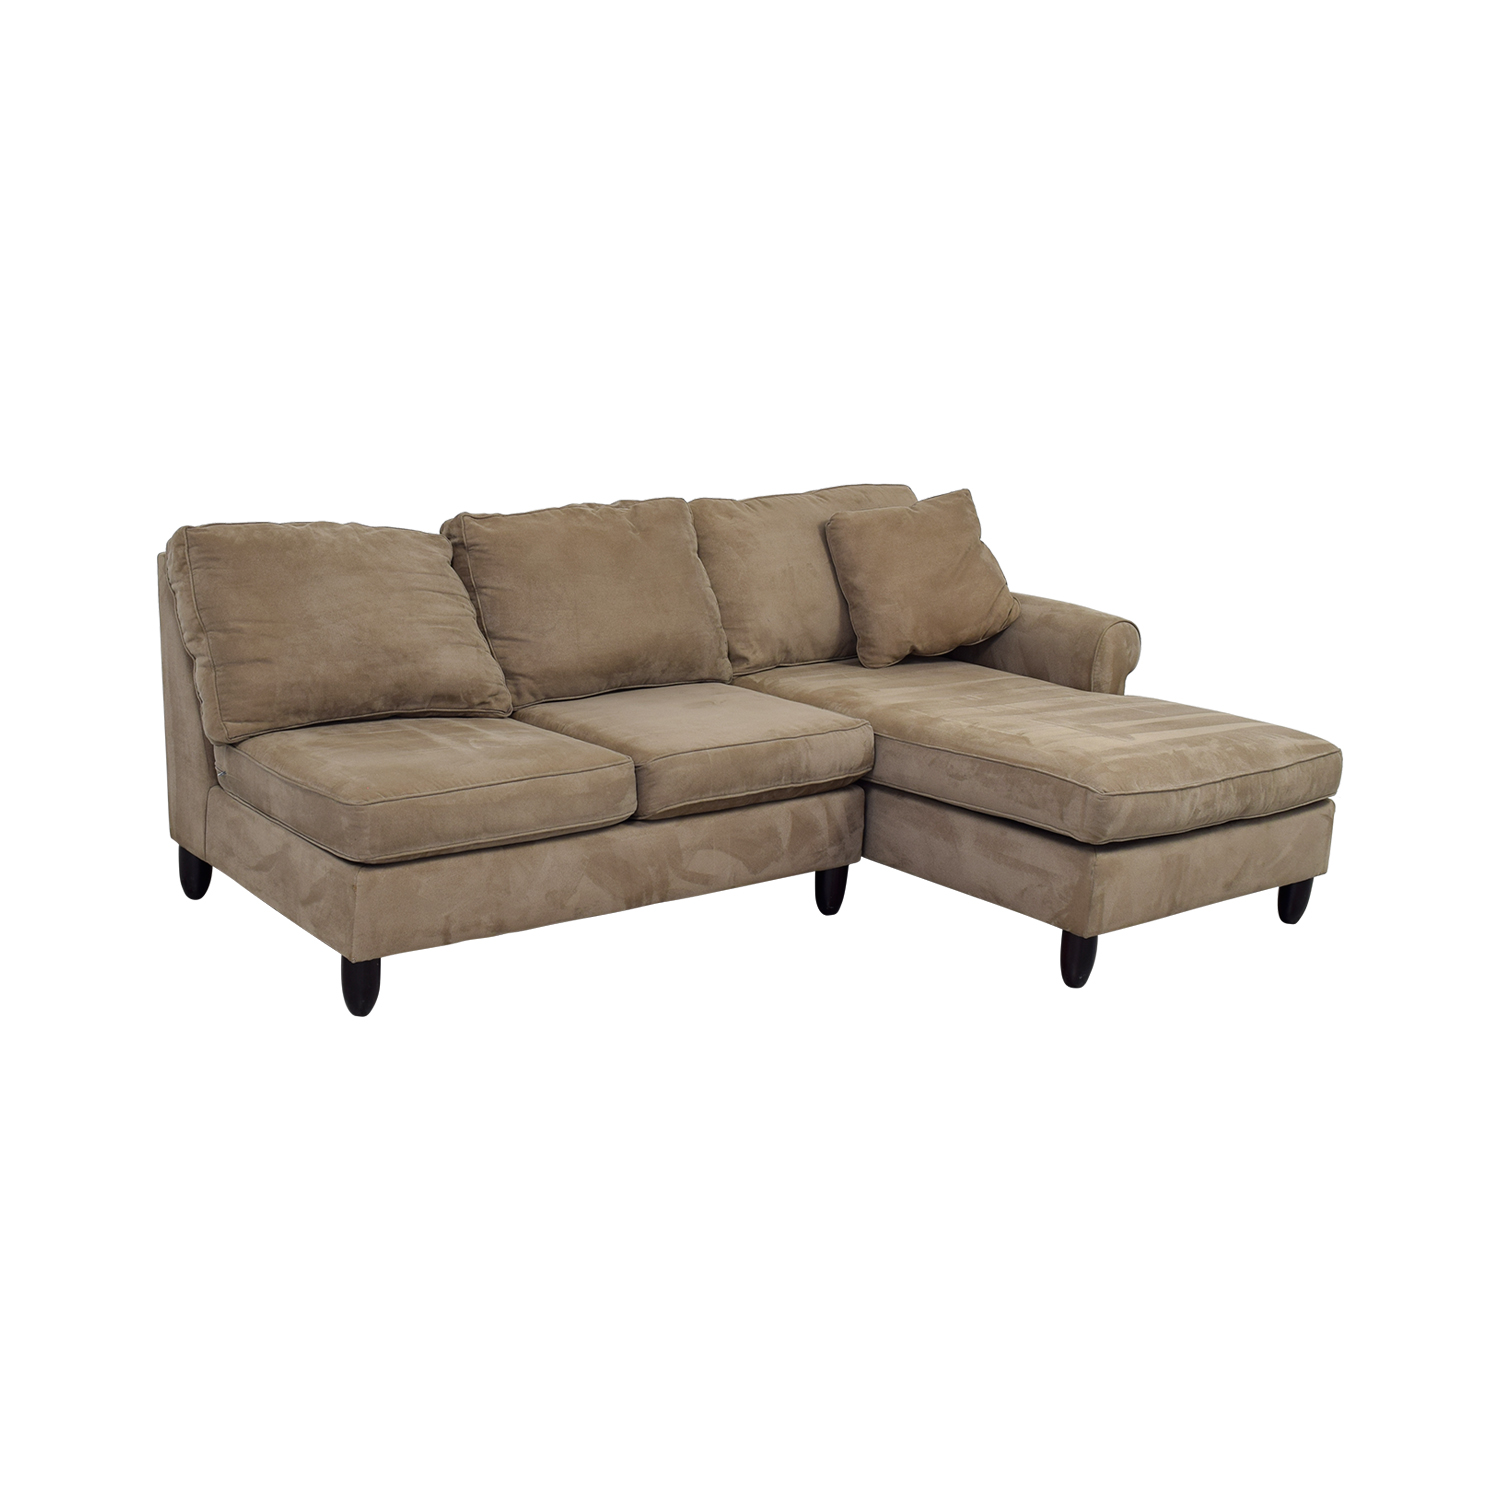 Outstanding 90 Off Havertys Havertys Tan Chaise Sectional Sofas Pdpeps Interior Chair Design Pdpepsorg